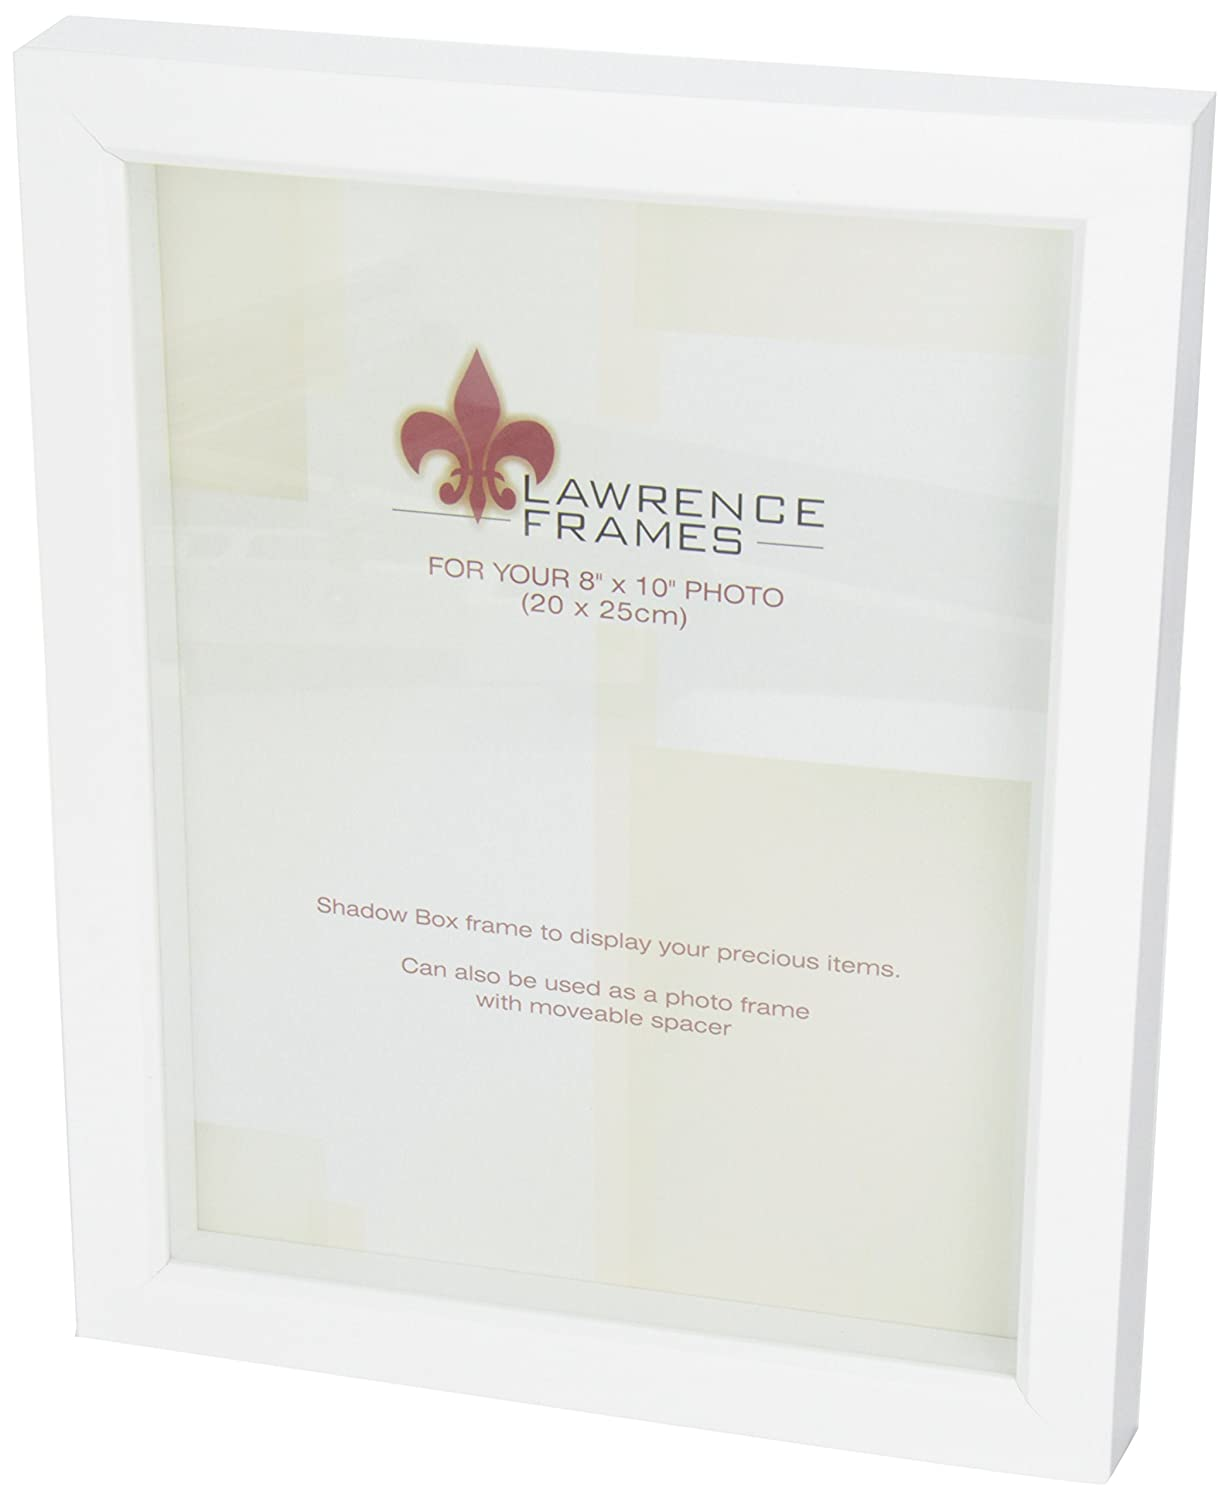 amazoncom lawrence frames white wood treasure box shadow box picture frame 8 by 10inch